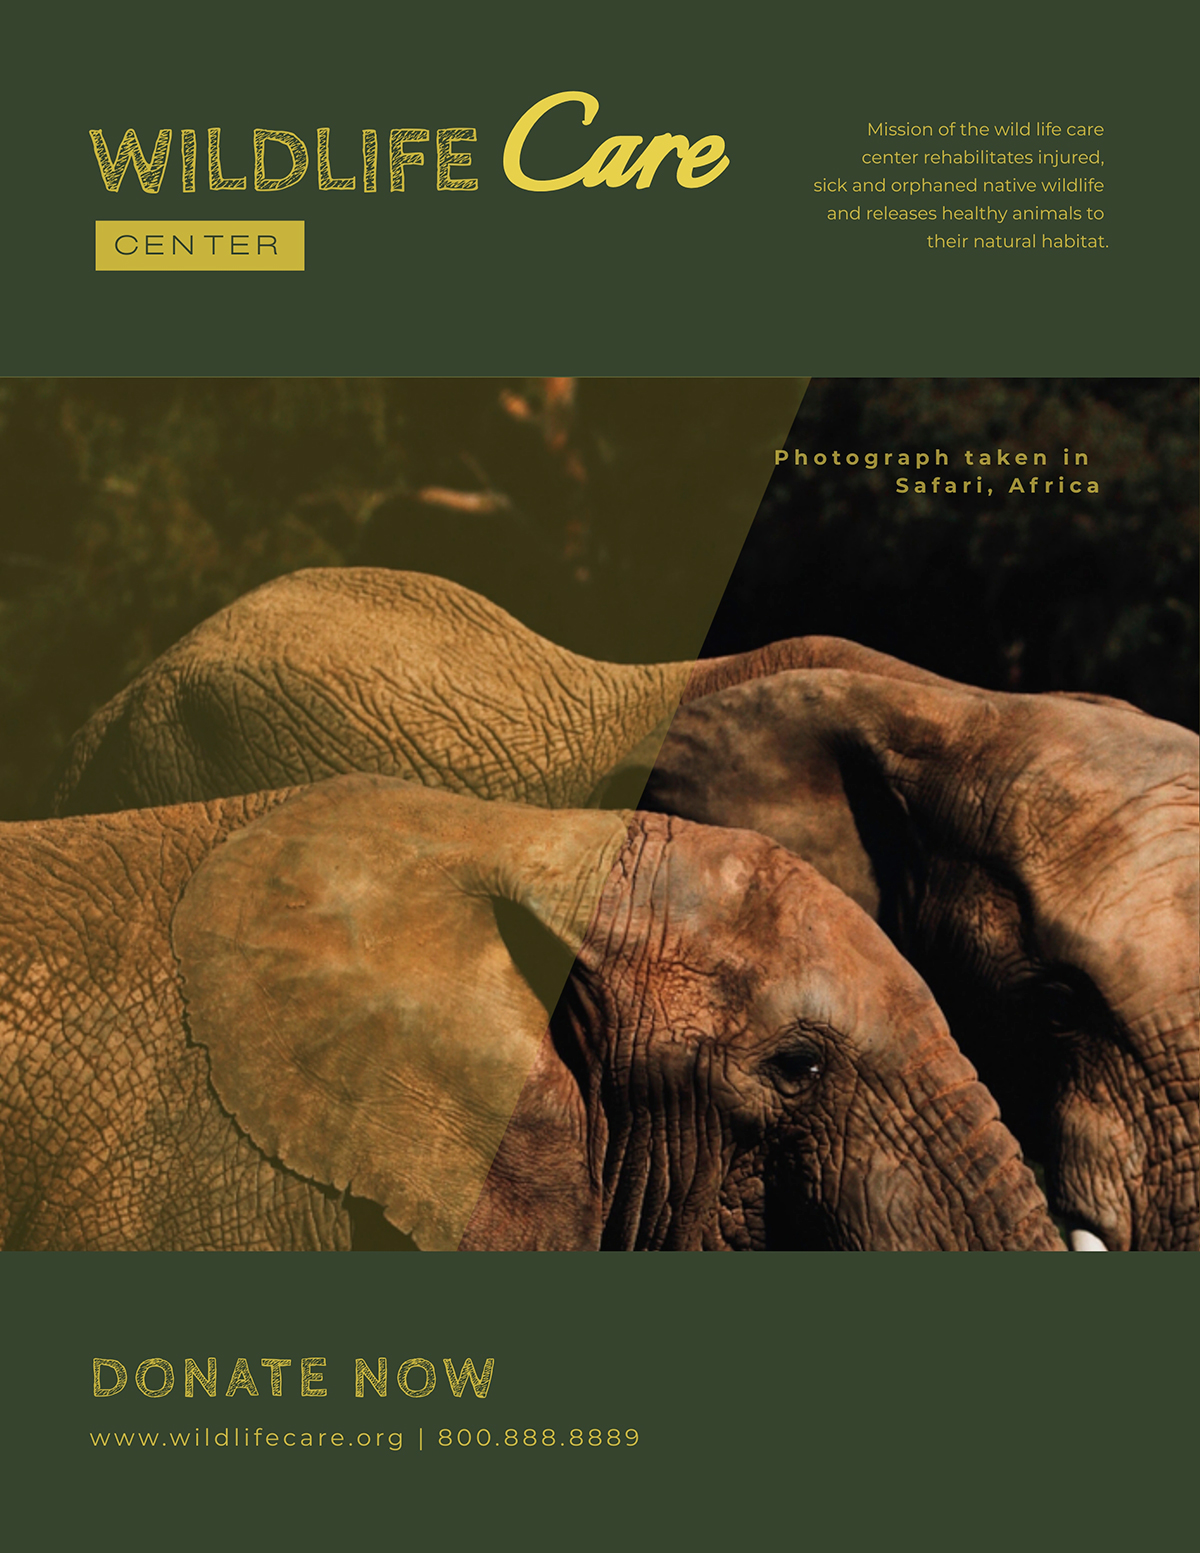 An elephant nonprofit flyer template available in Visme.